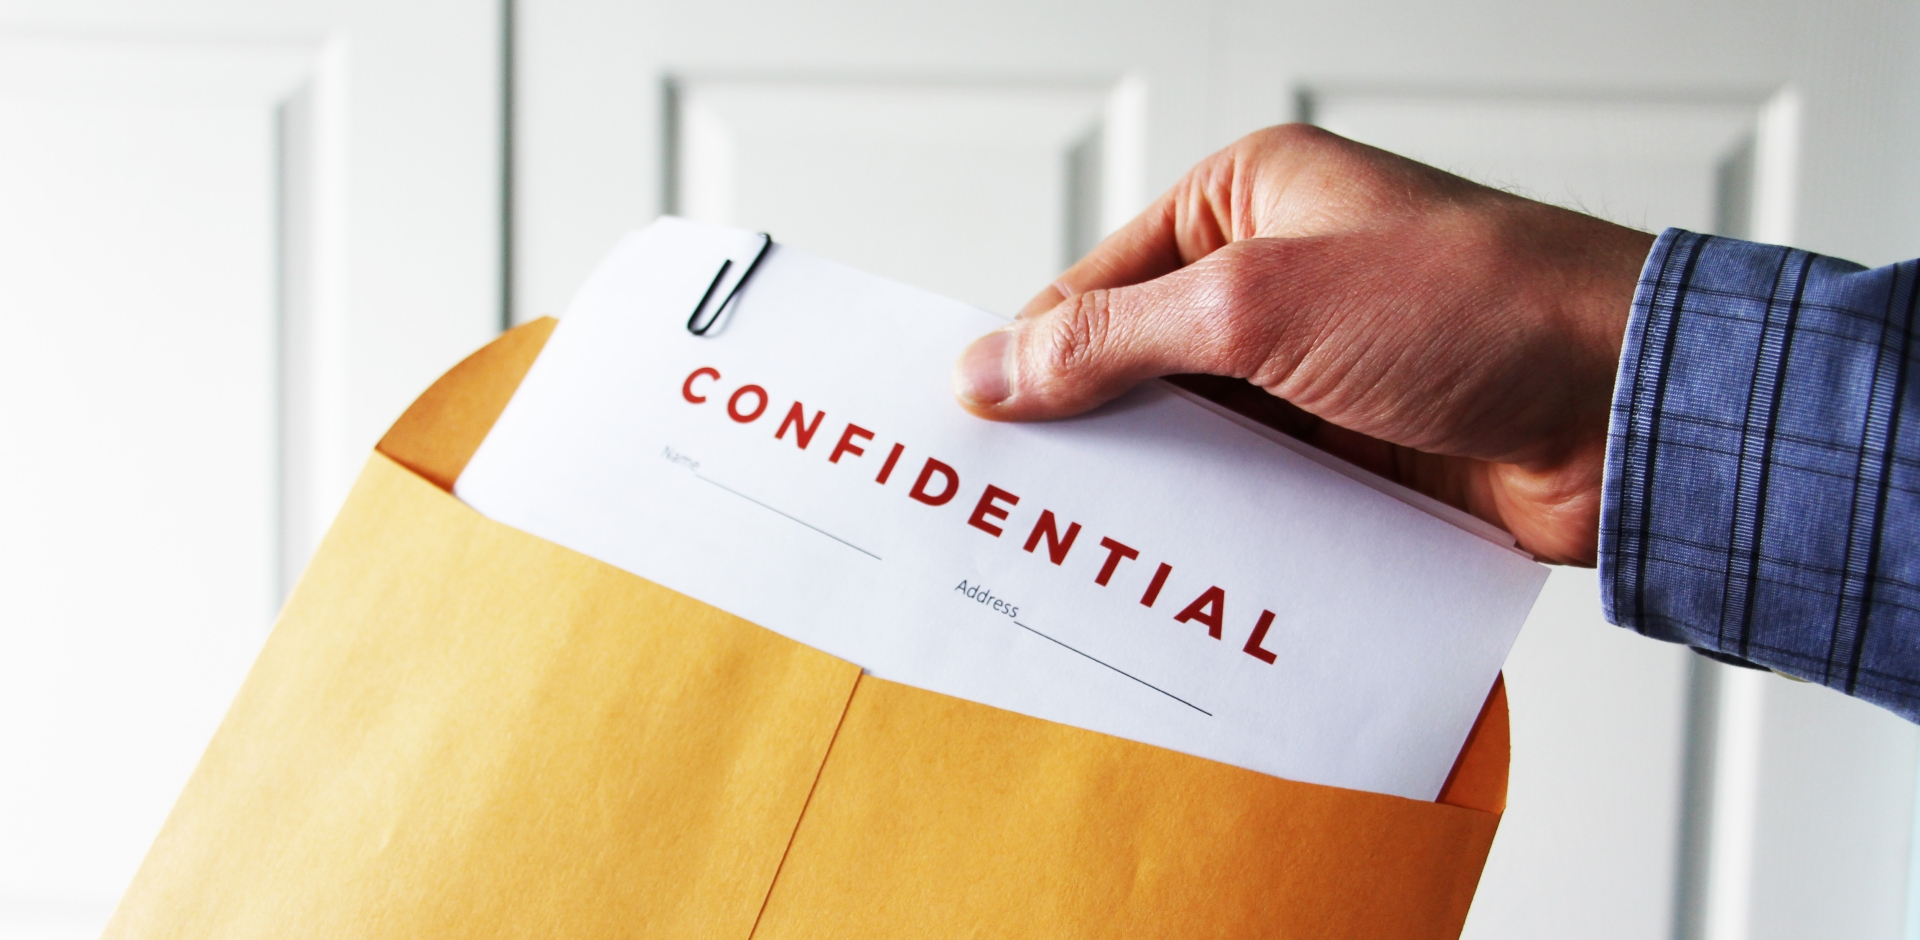 PHIPA Confidential information in the envelope